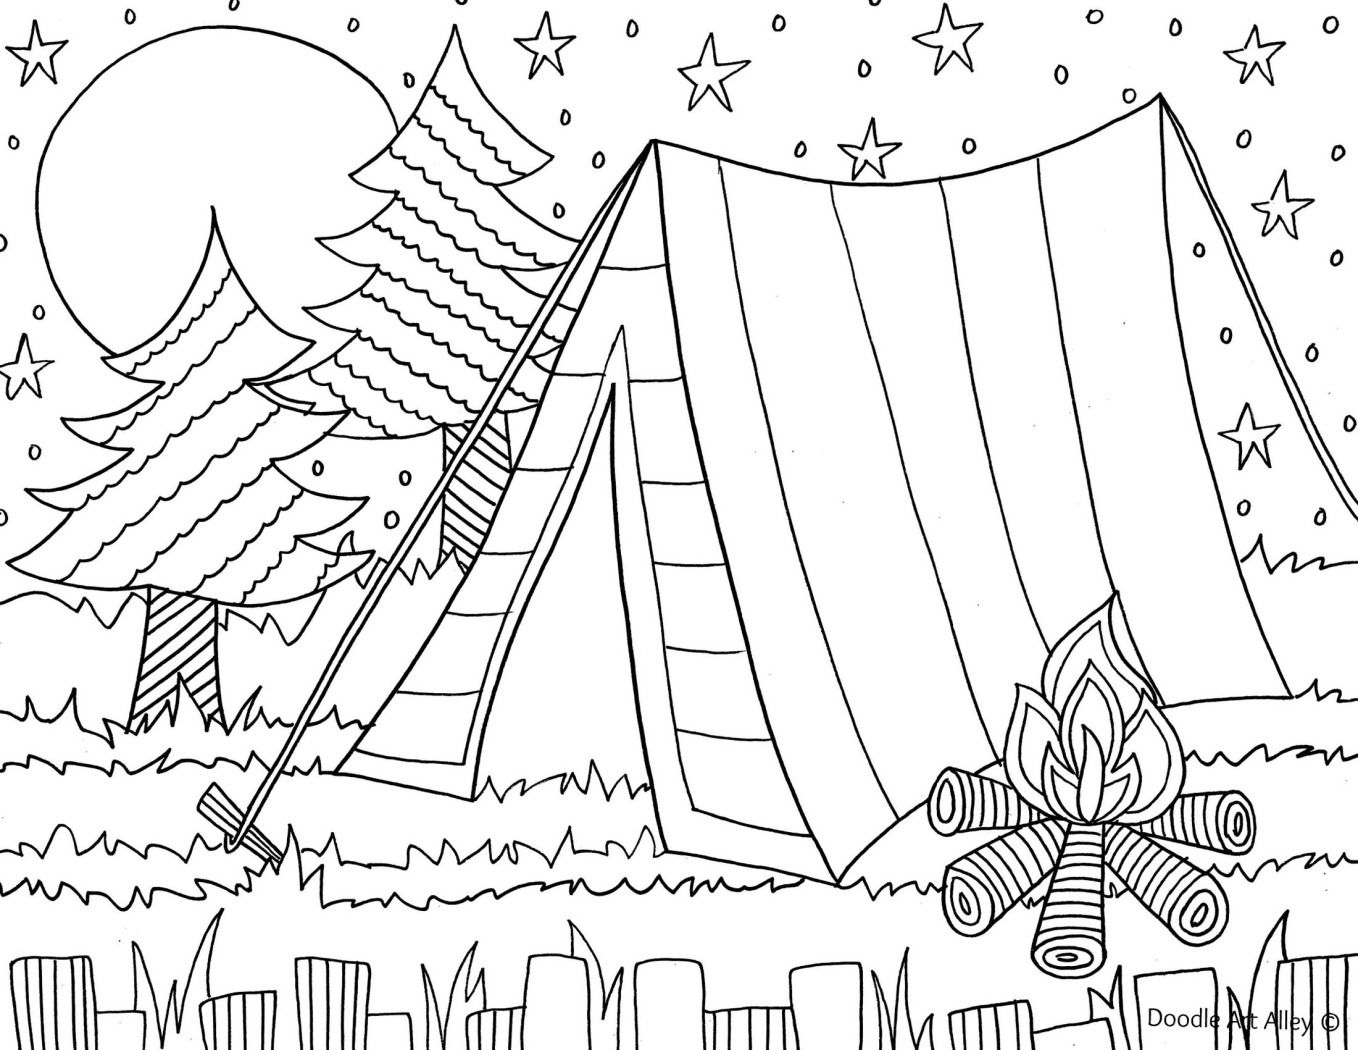 Free coloring pages camping - Explore Free Coloring Pages Coloring Sheets And More